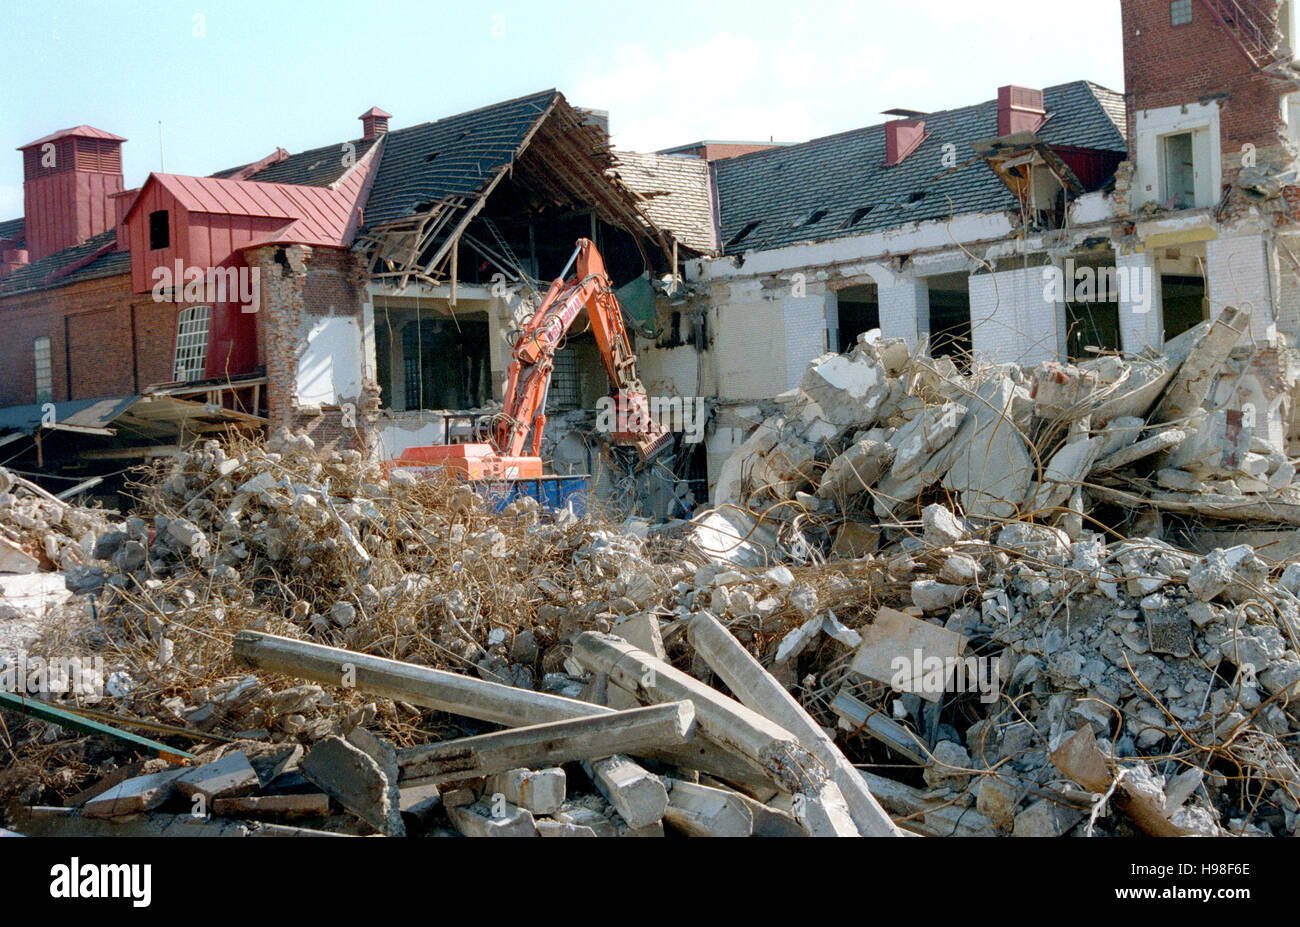 DEMOLITION of house 2014 - Stock Image